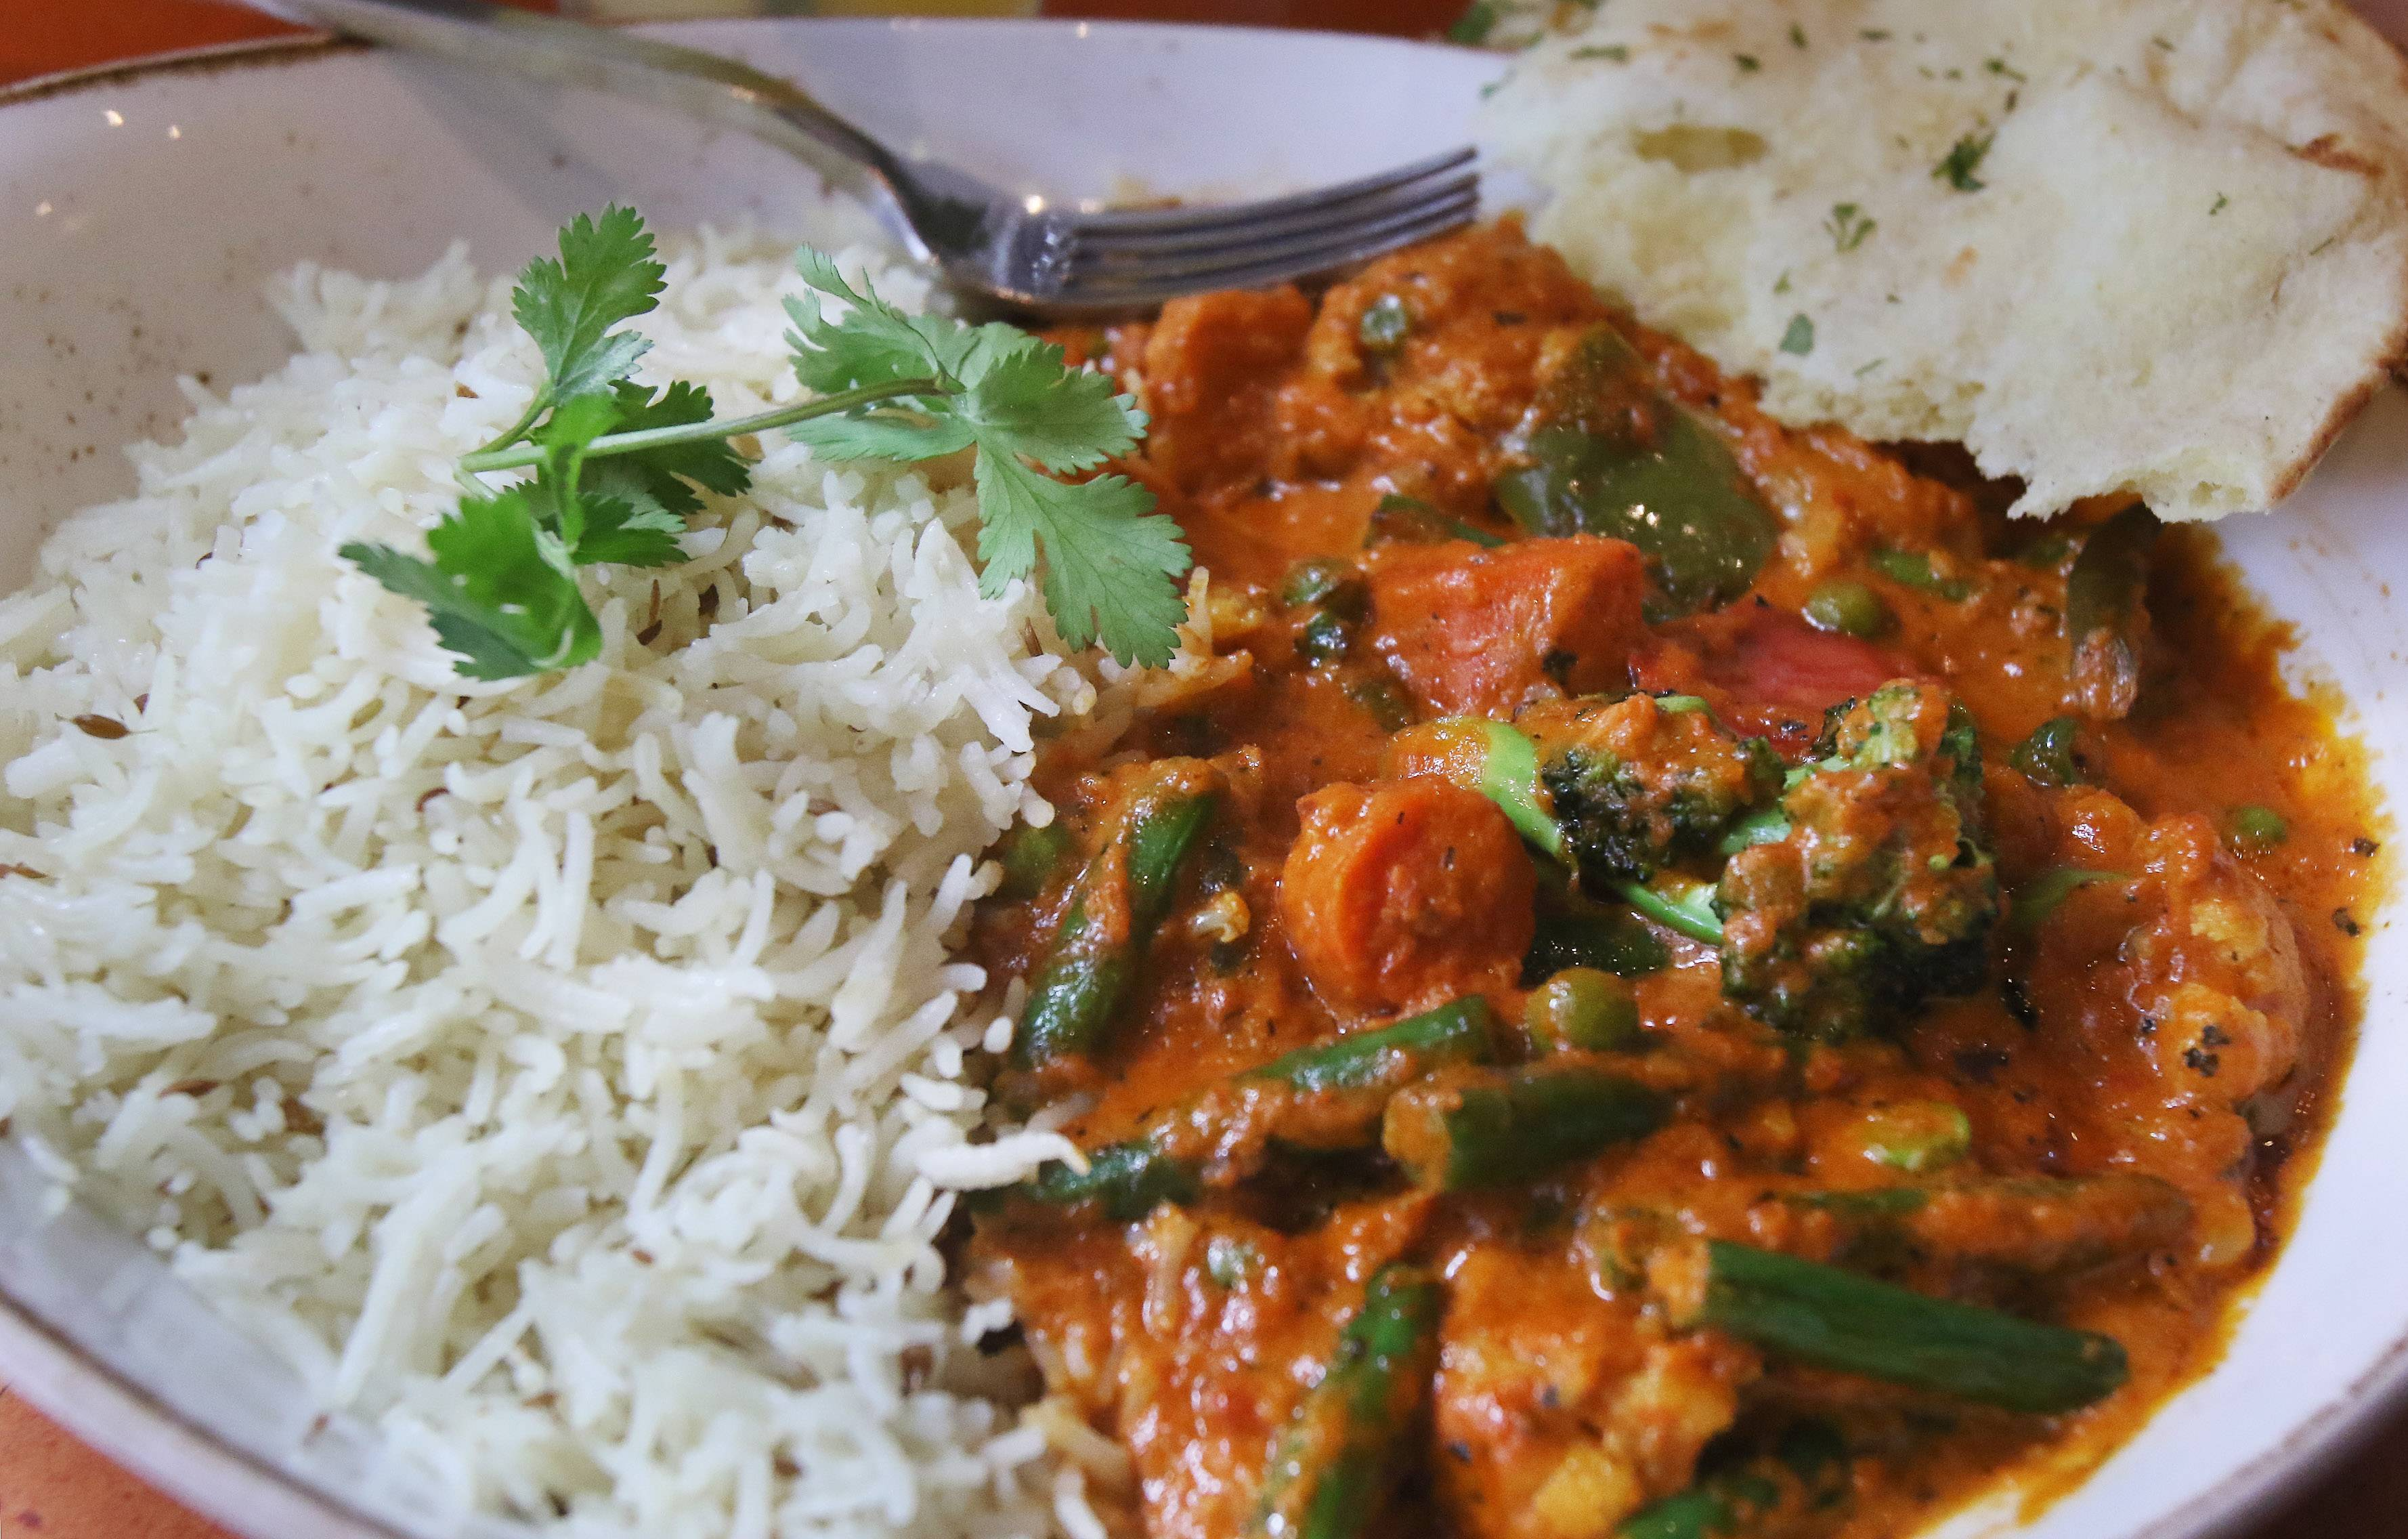 Marigold Maison's vegetable masala bowl features a tomato butter sauce and basmati rice.